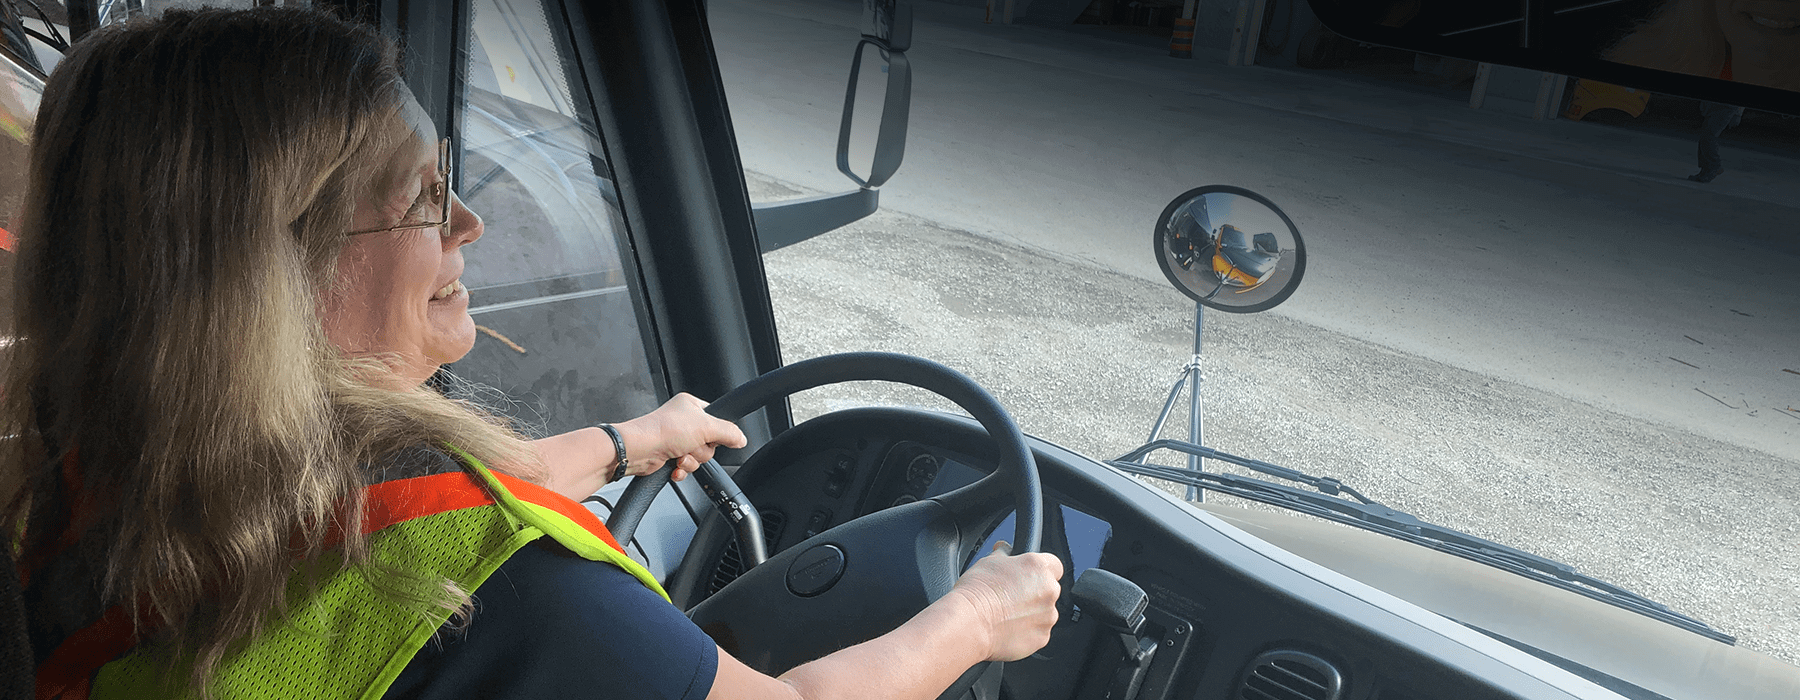 Become a School Bus Driver